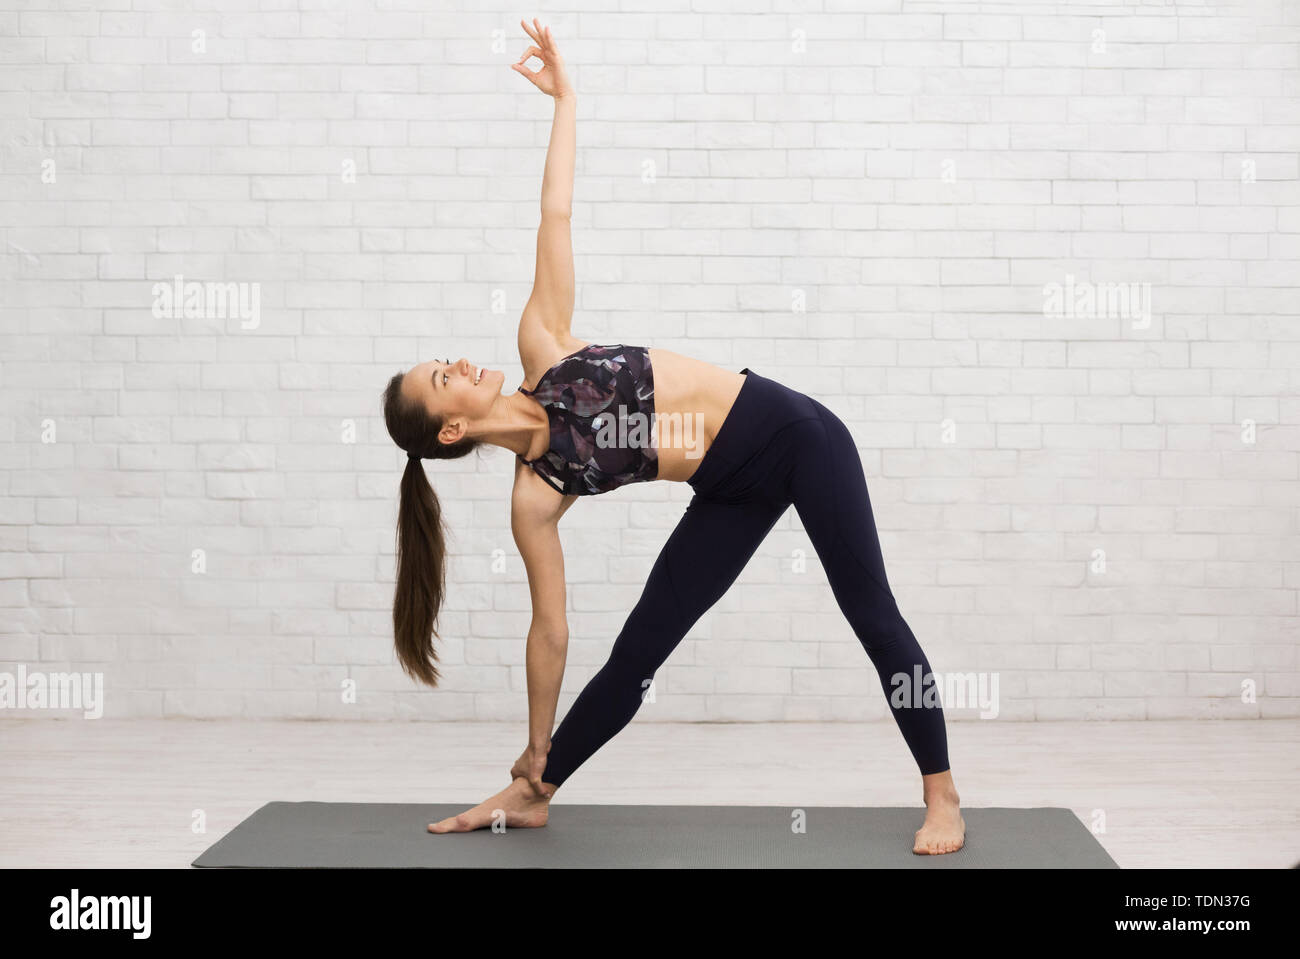 Triangle Pose Photography